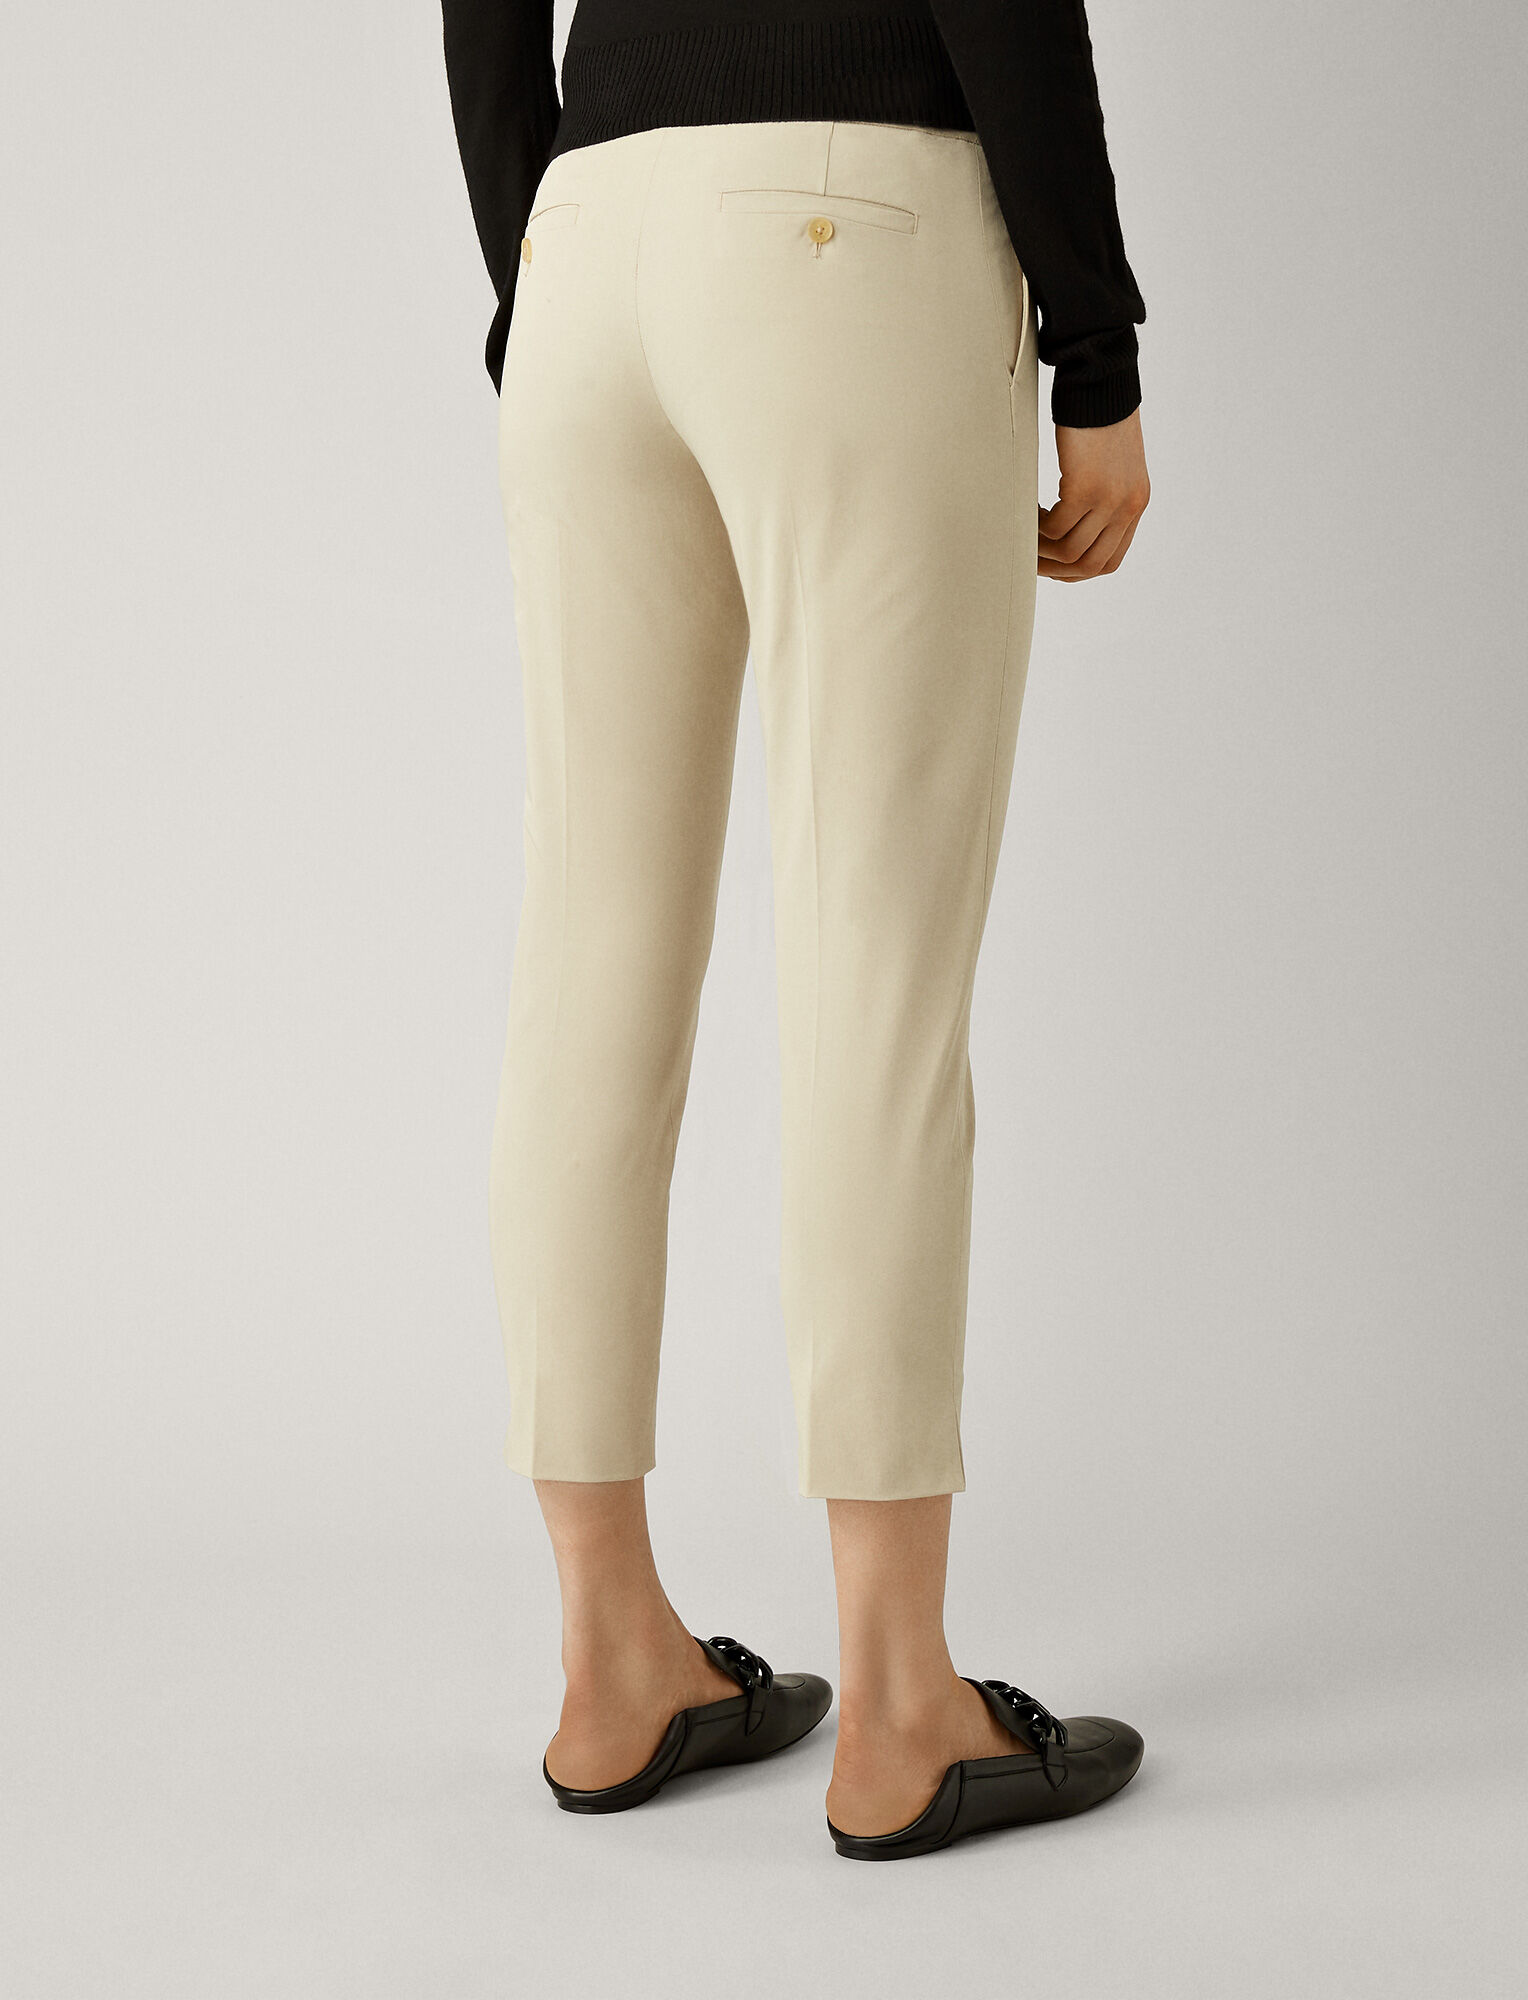 Joseph, Bing Court Polish Cotton Trousers, in STONE